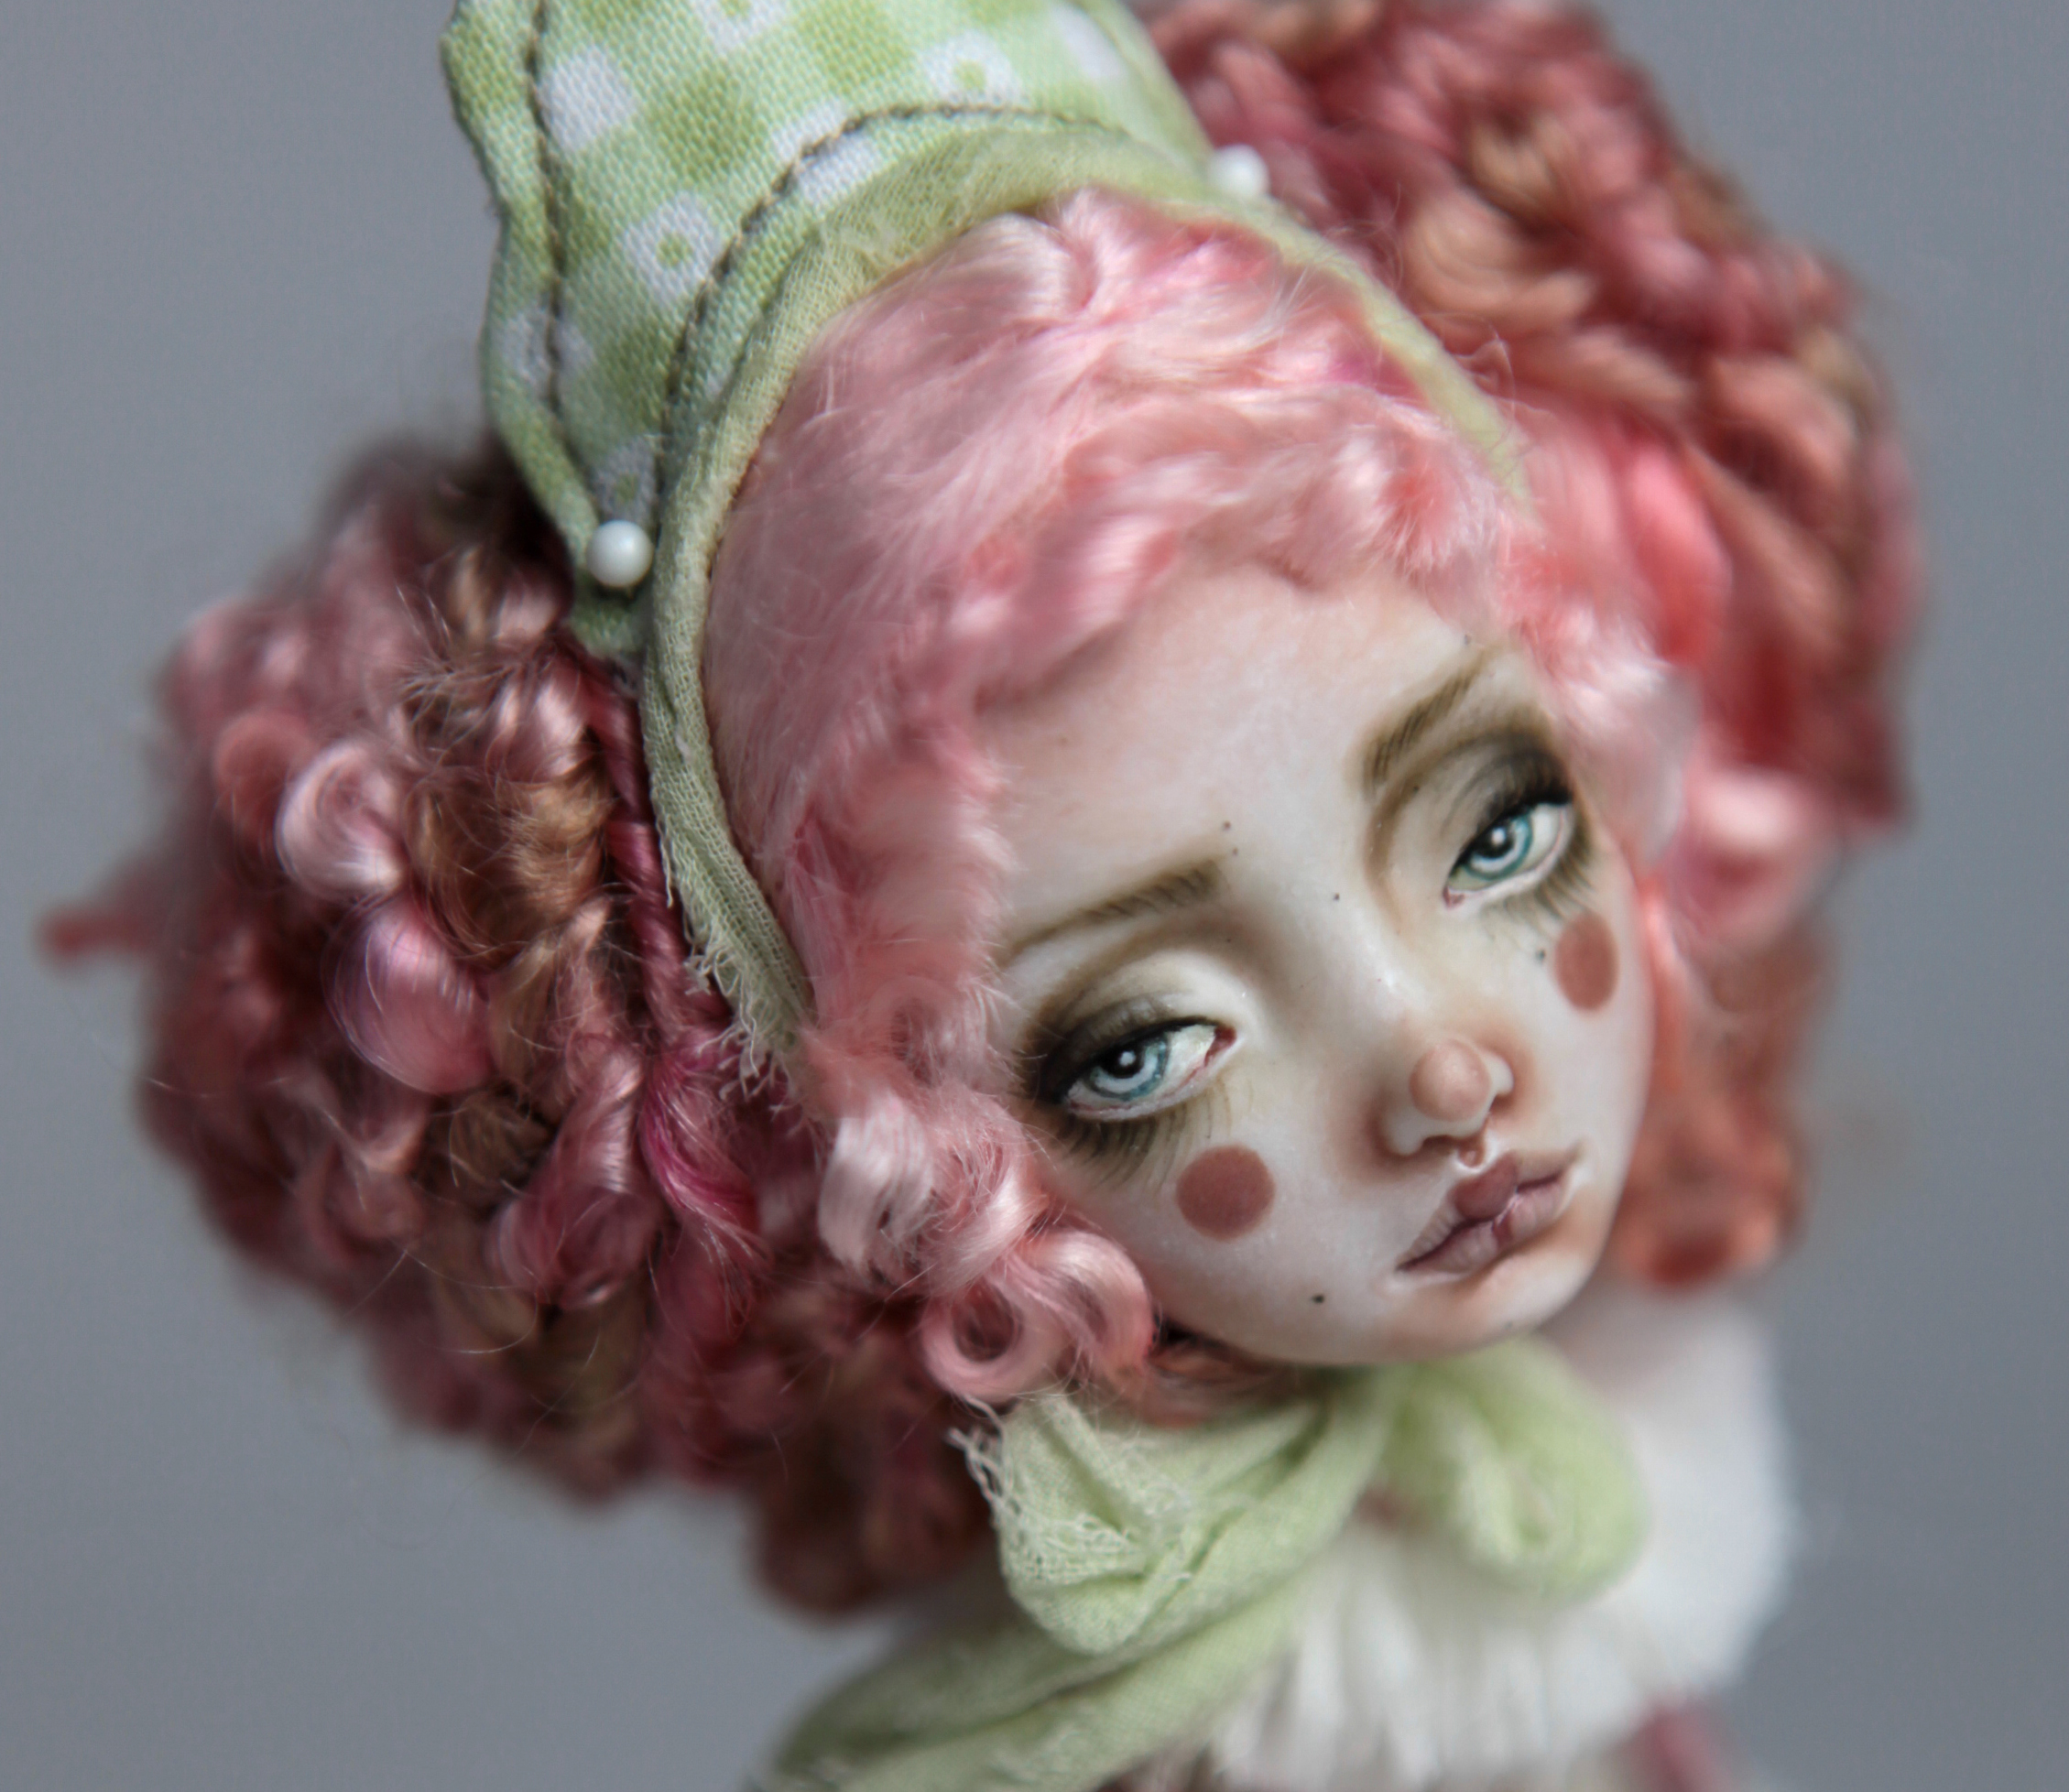 Porcelain BJD Dolls Victorian Strawberry62a 1 15 Victorian Strawberry Clown Porcelain BJD Doll Rea